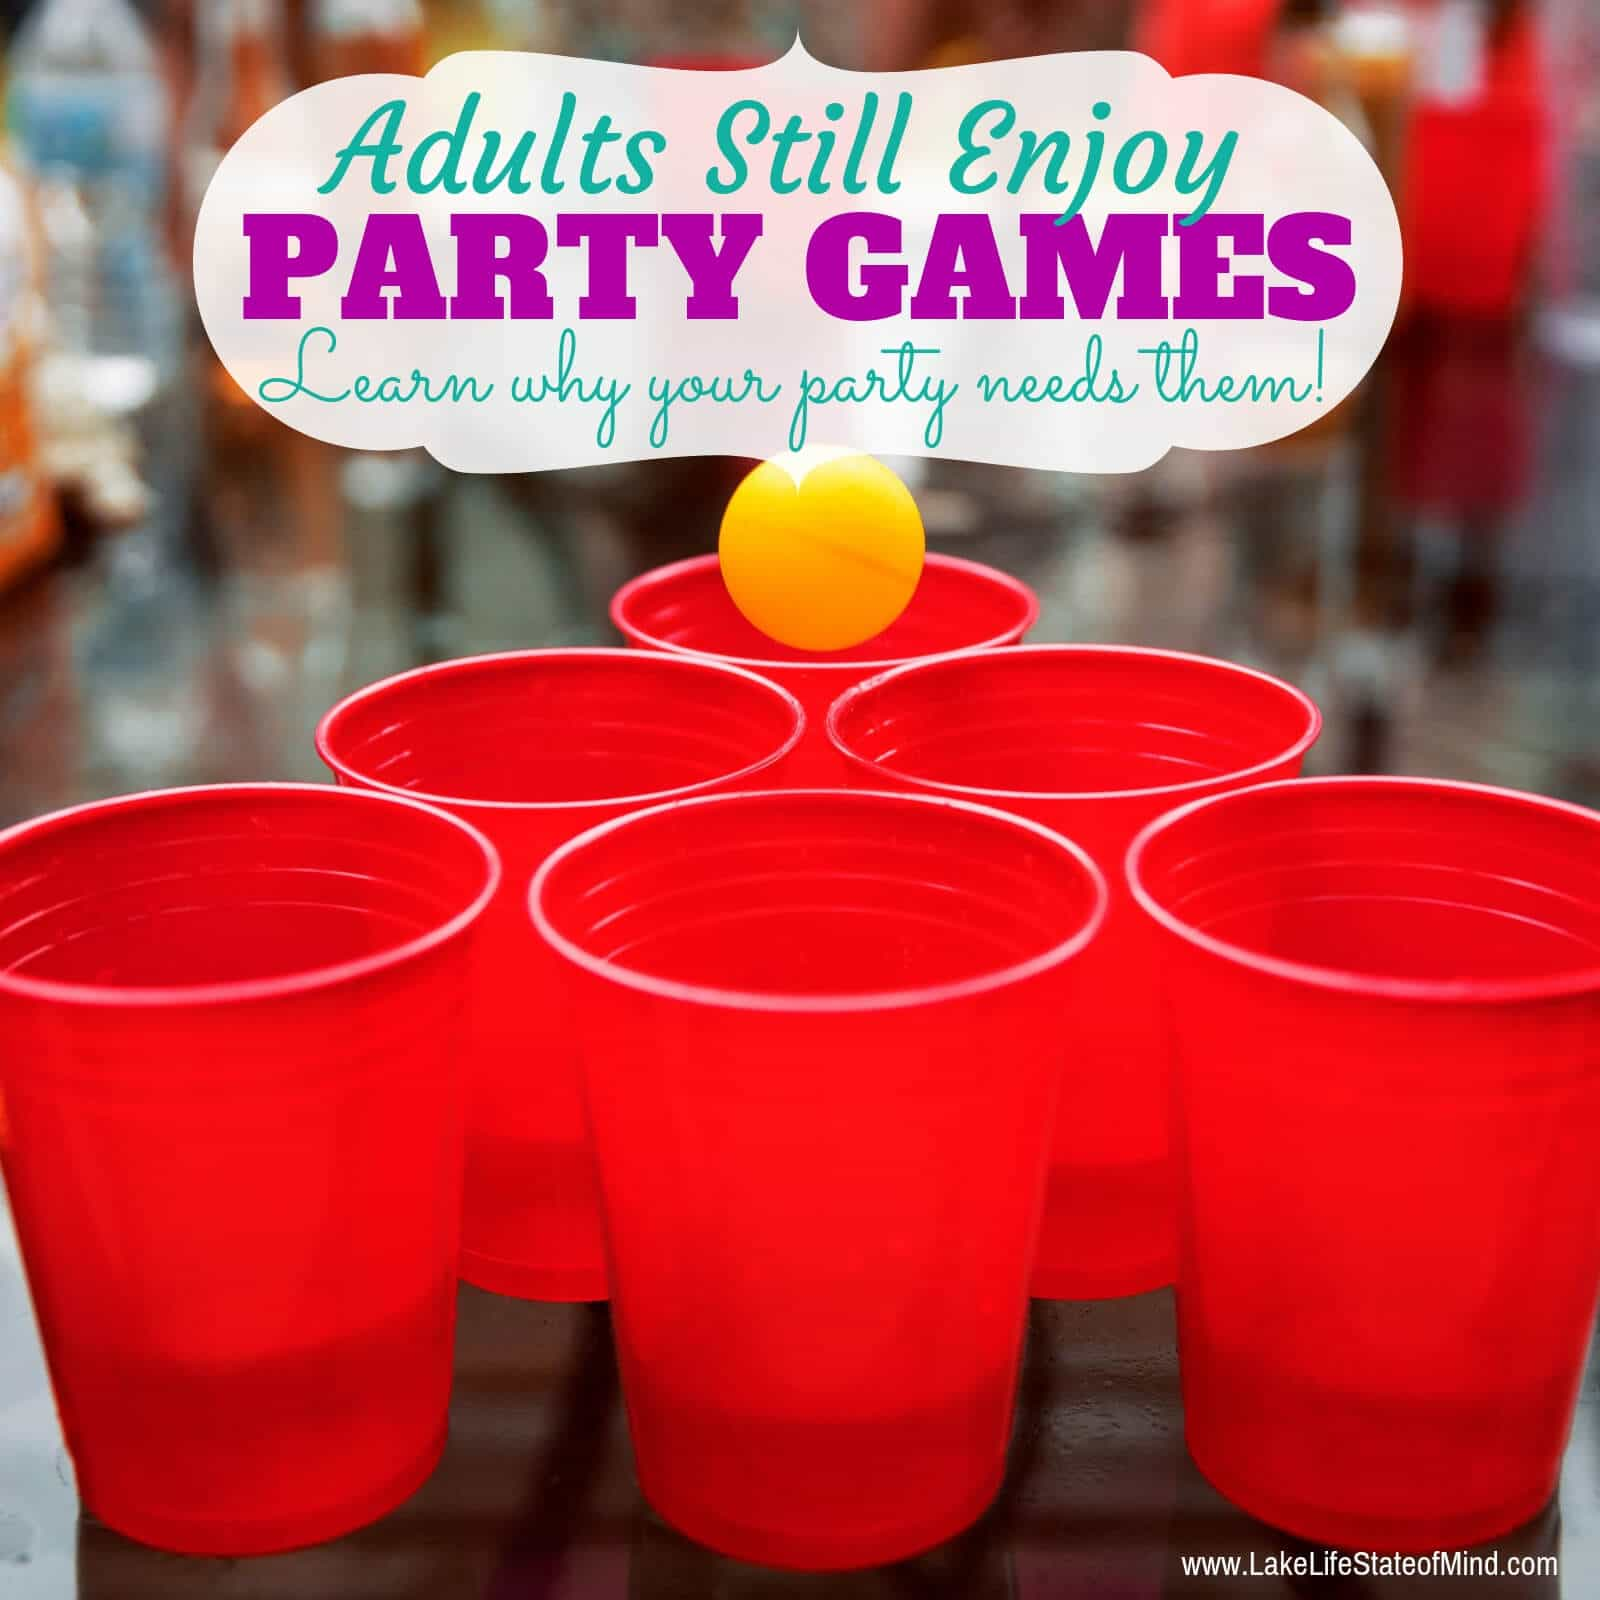 Party Games Aren't Just For Kids